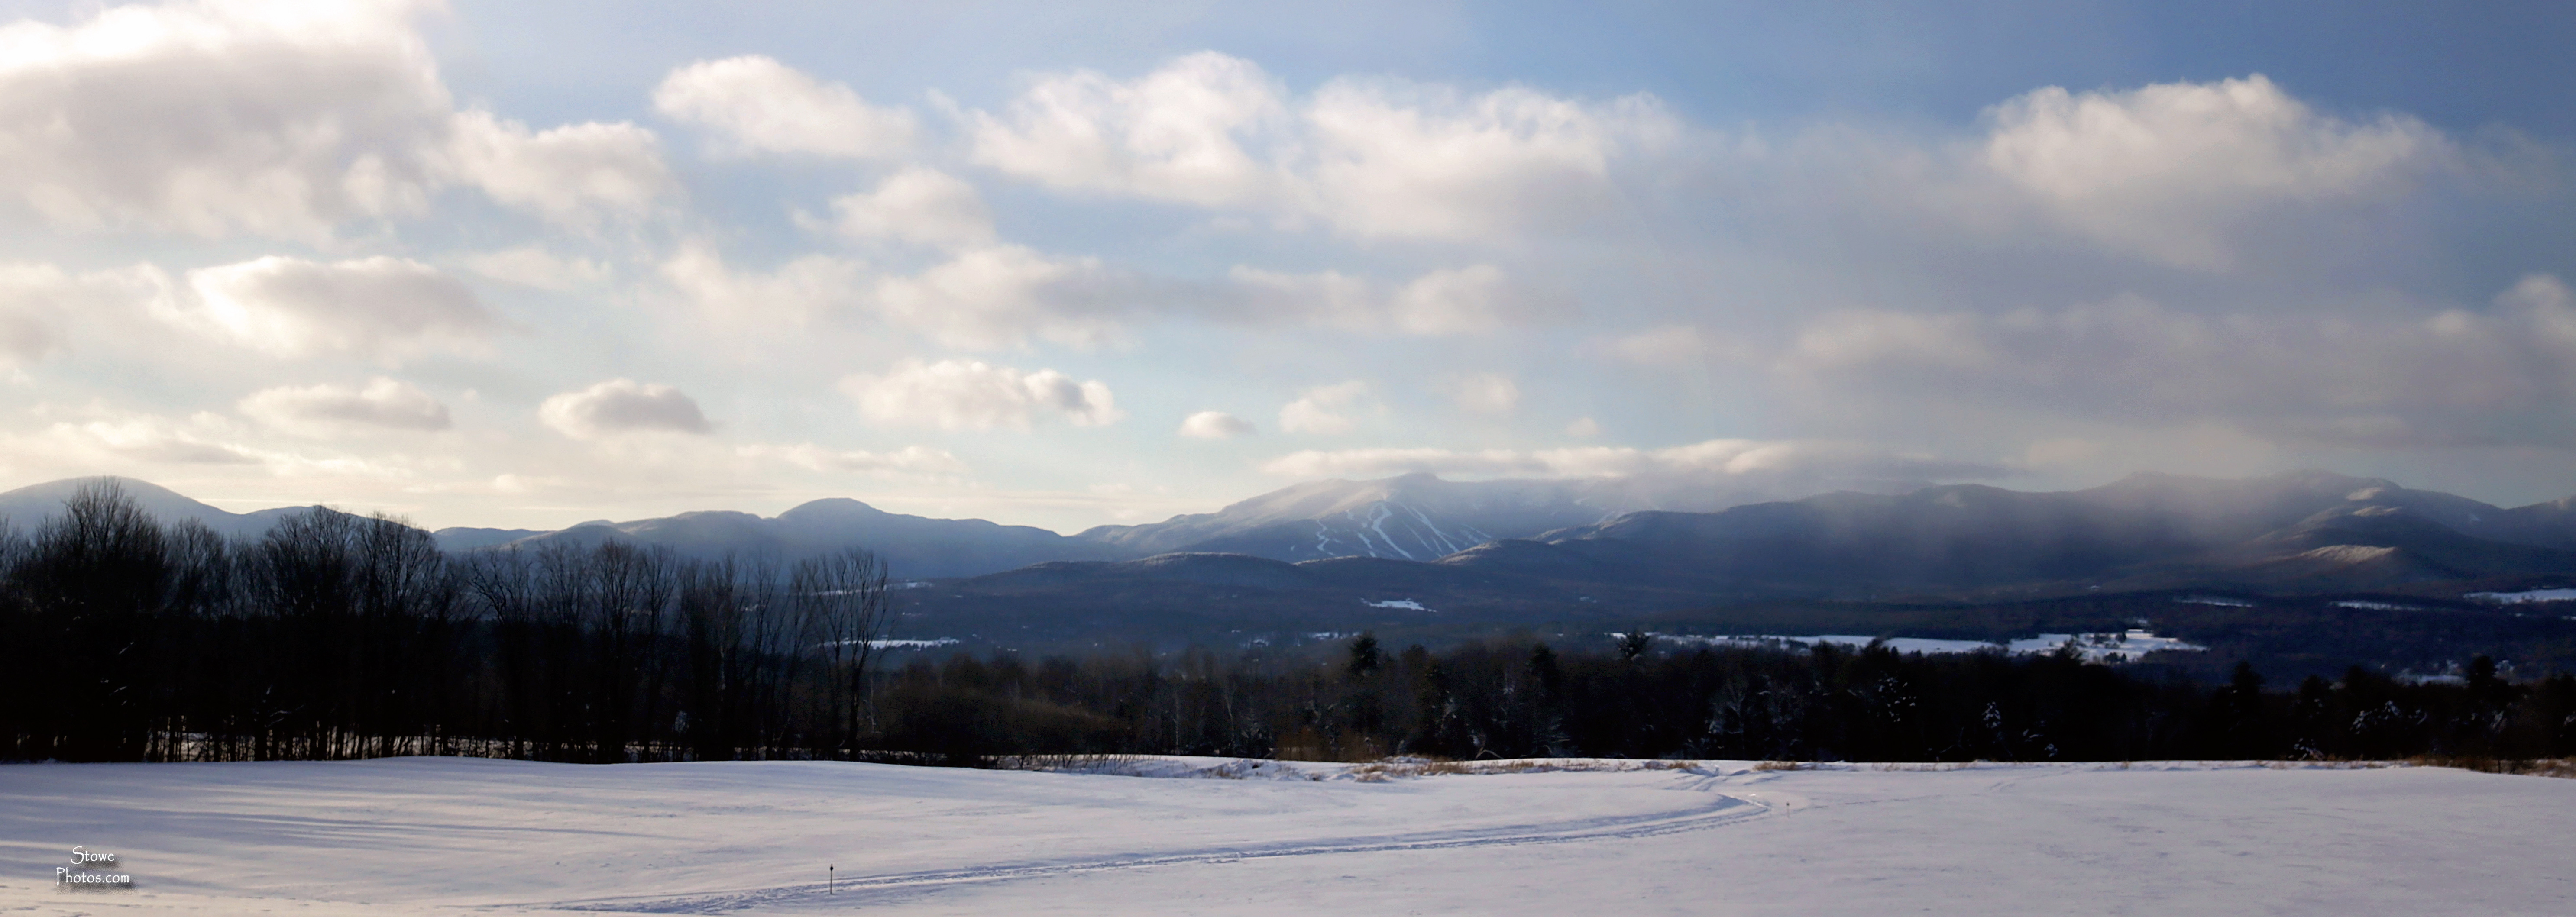 2018 1 1 elmore view to Mt Mansfield